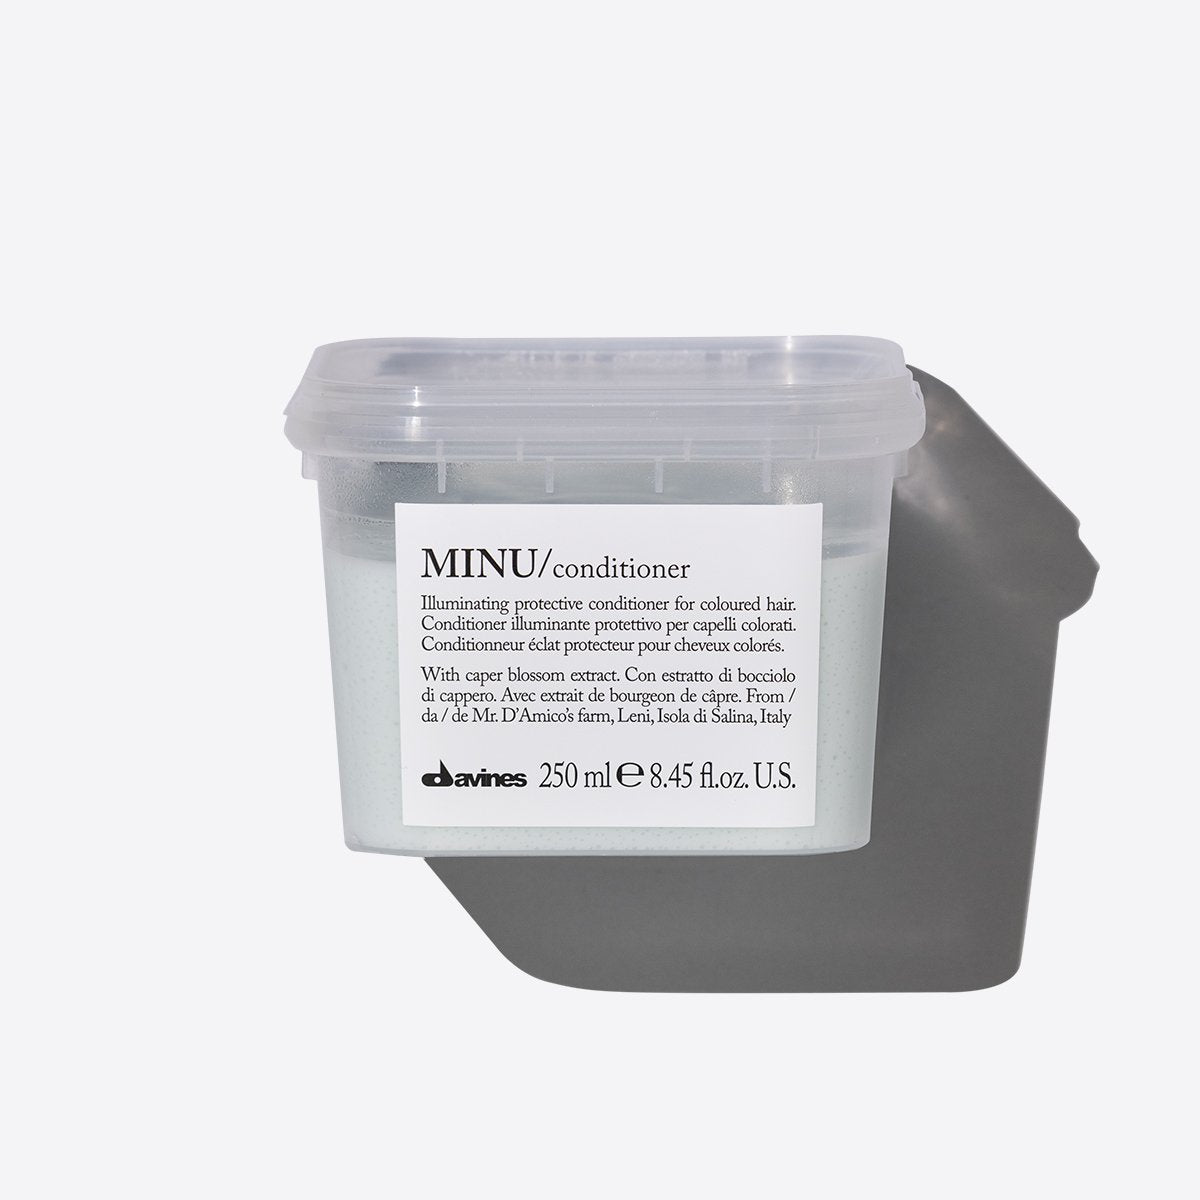 MINU Conditioner by Davines